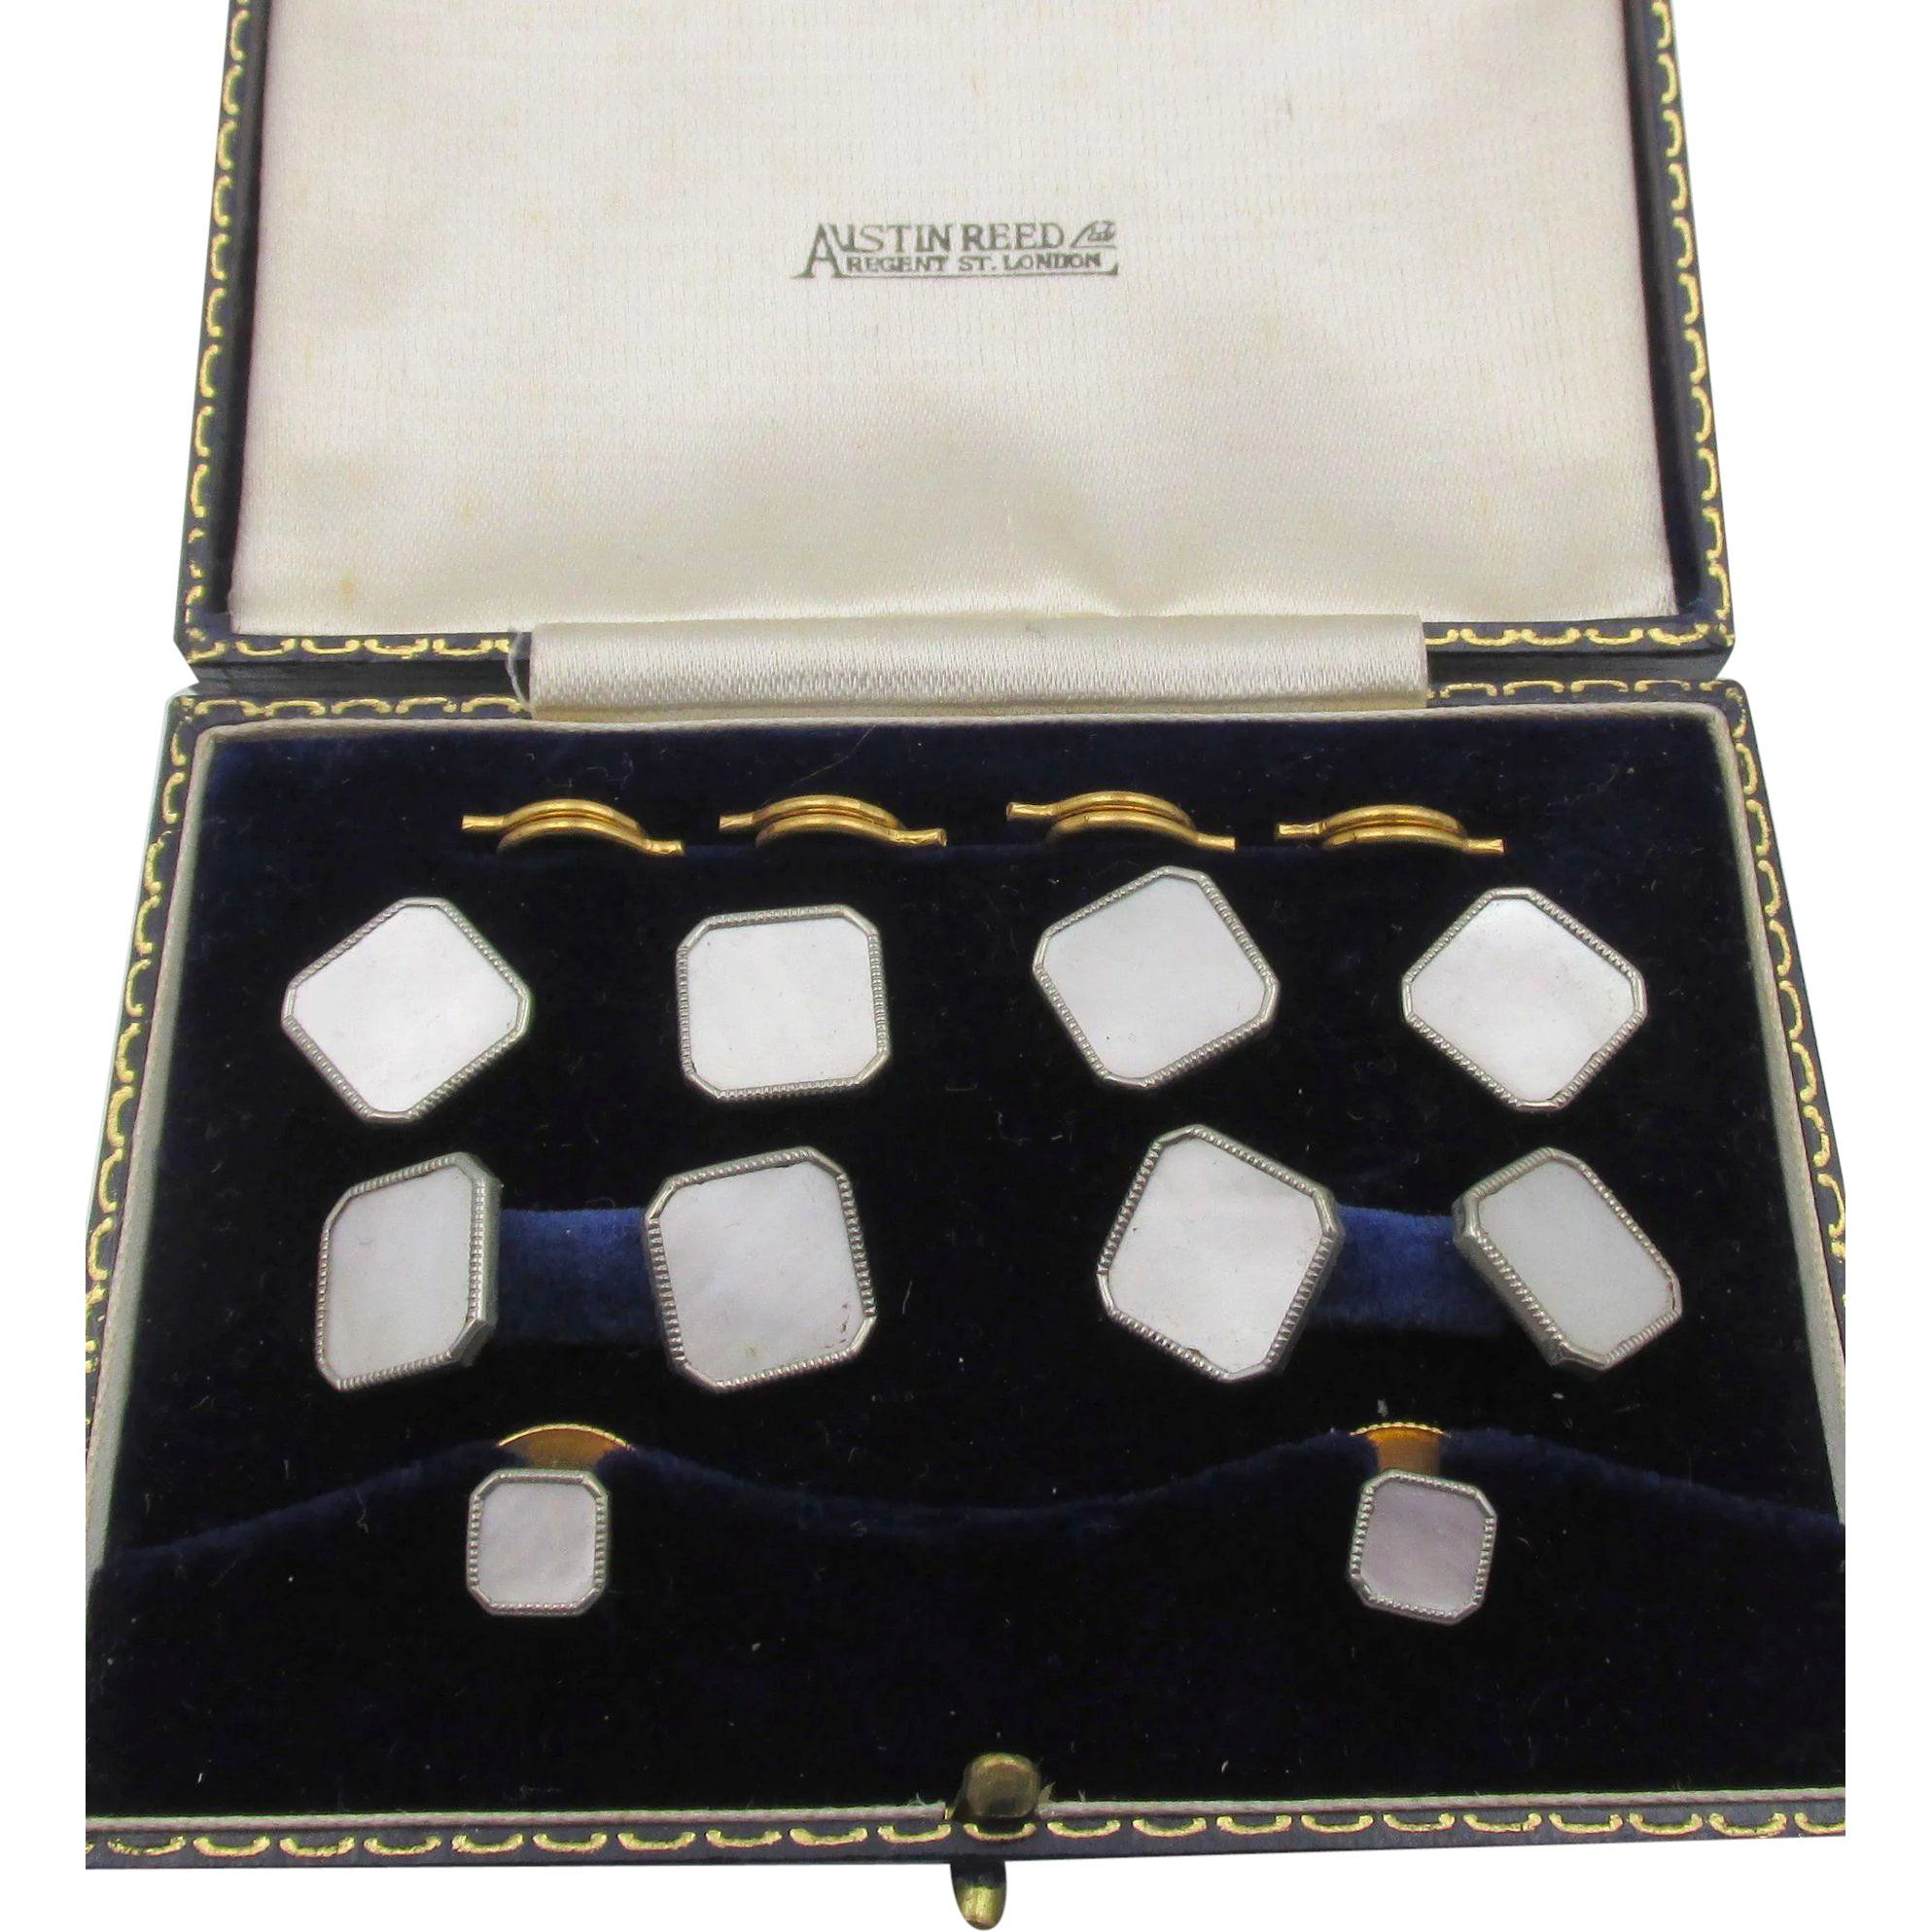 Vintage Austin Reed London Mother Of Pearl Men S Cufflink Button Set Cufflinks Men Vintage Austin Cufflinks